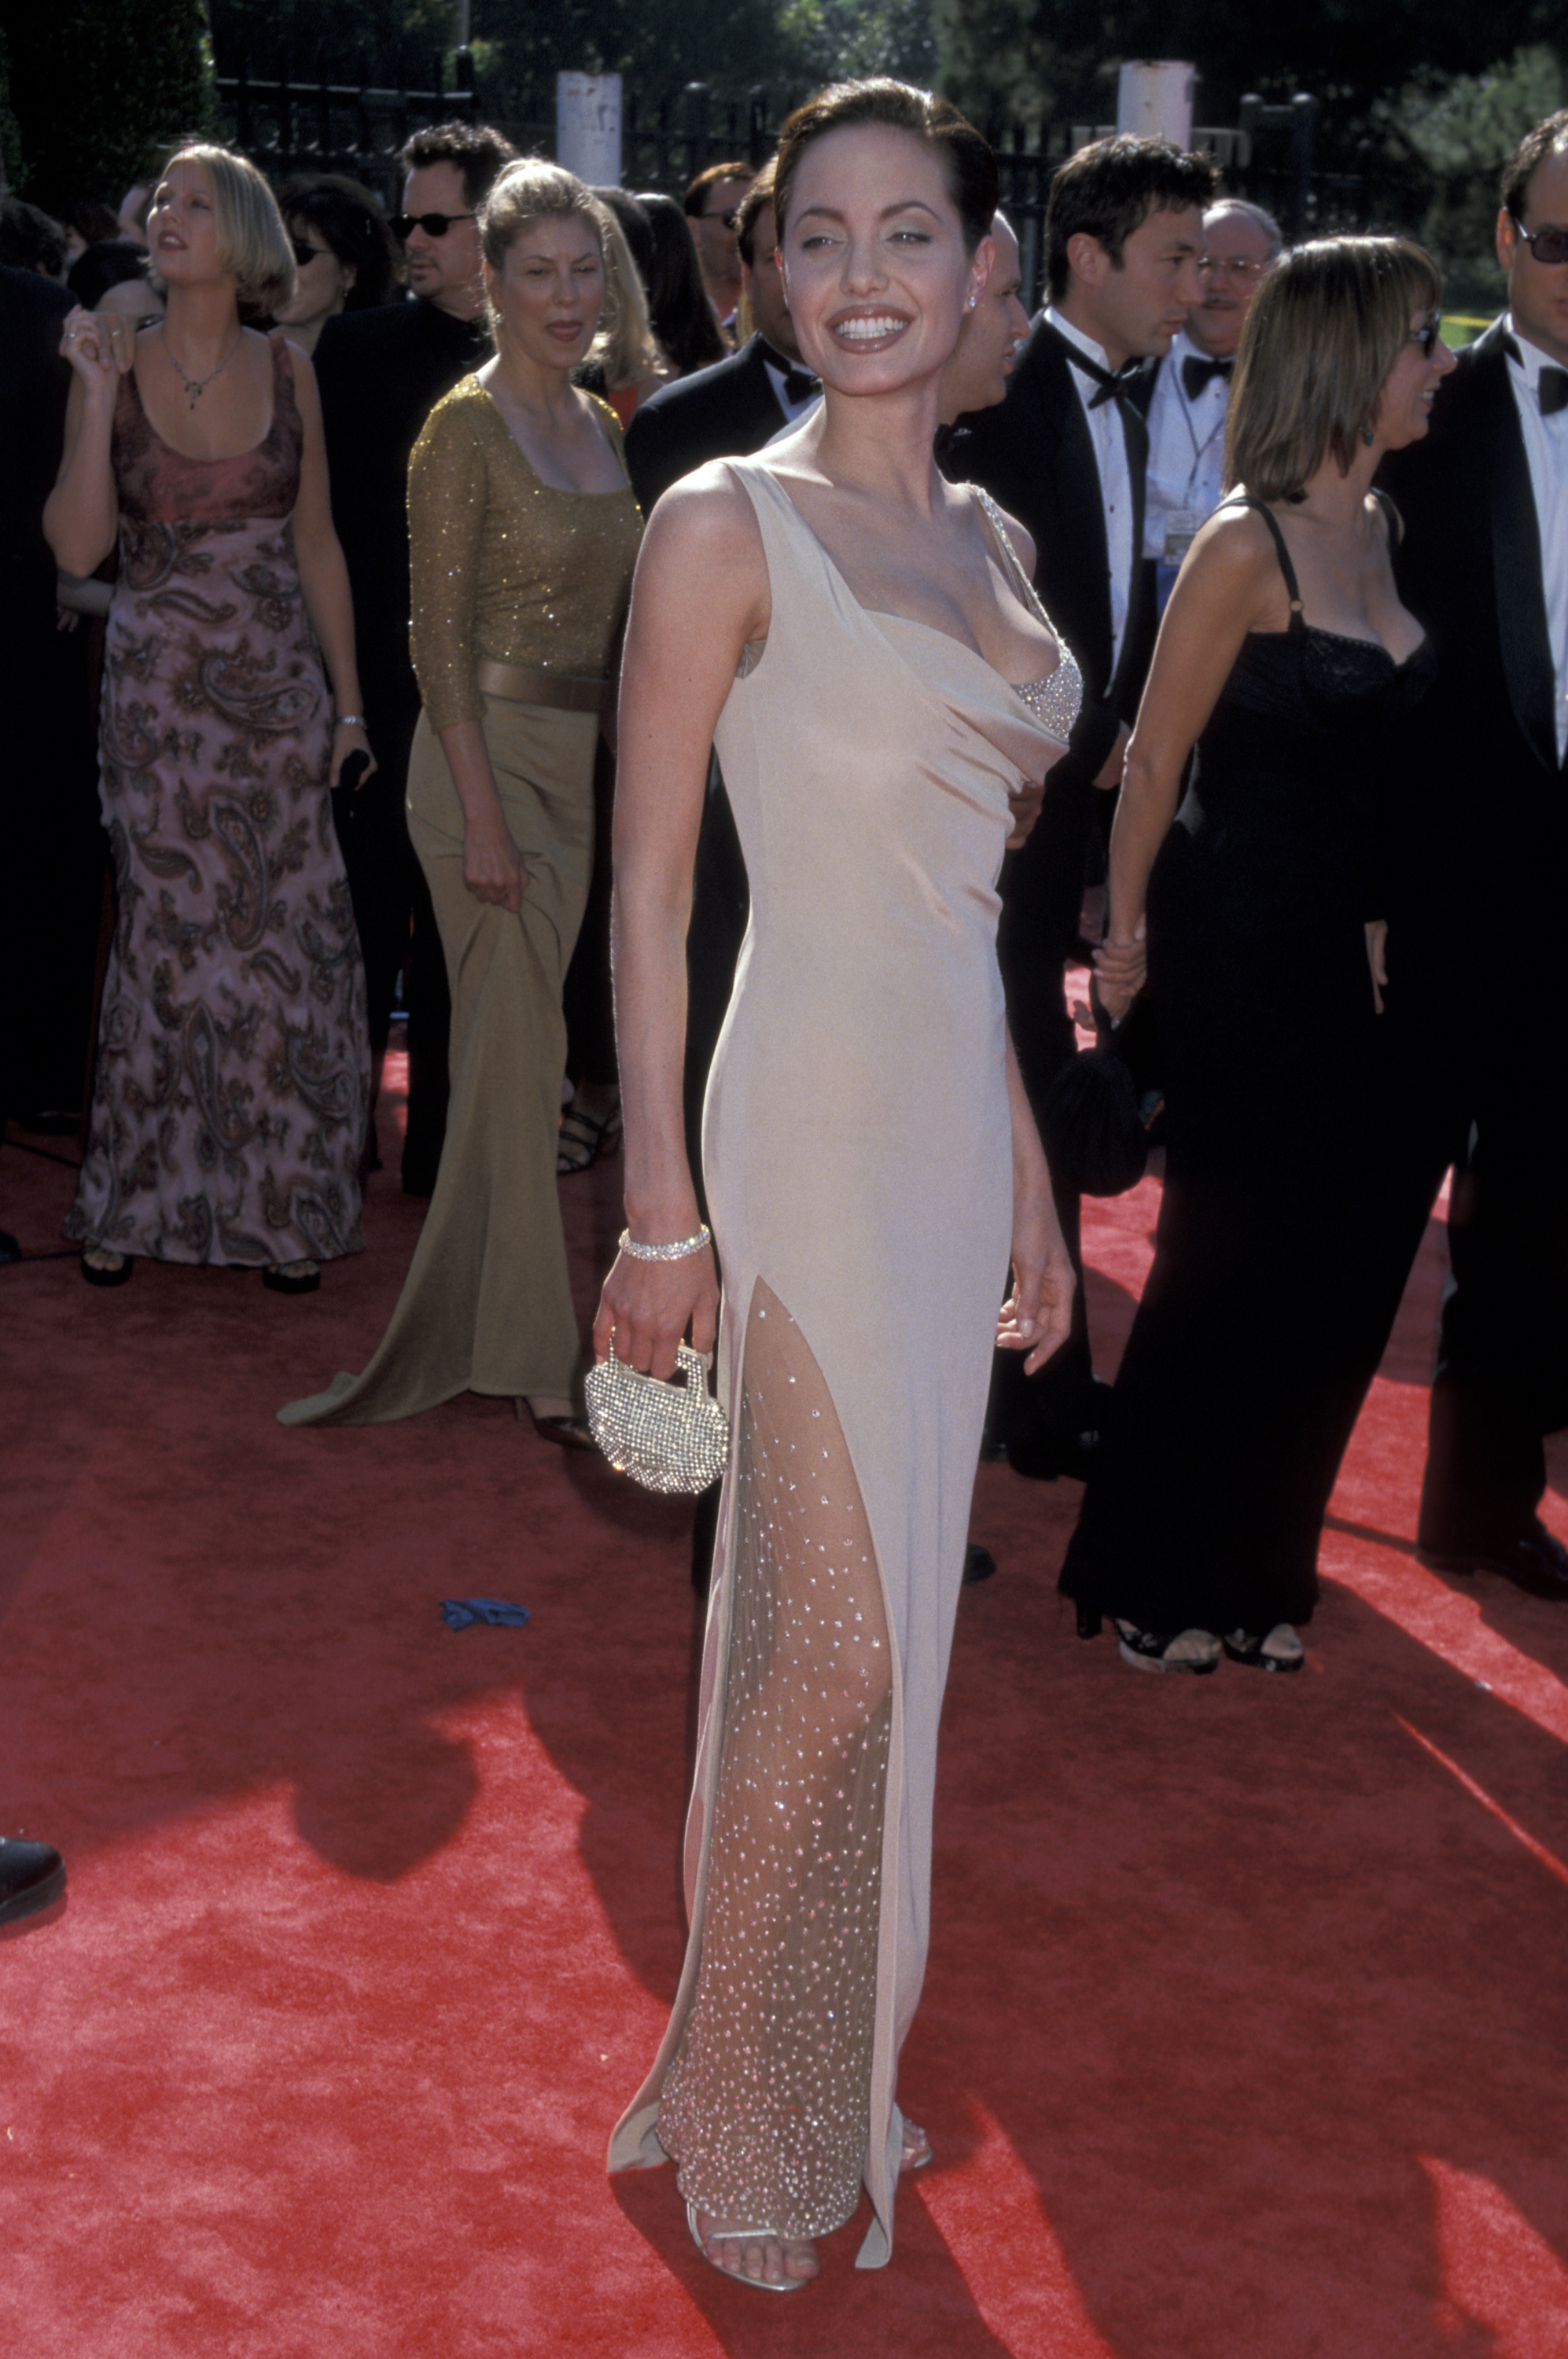 90s fashion: Angelina Jolie's red carpet style and iconic outfits - iD